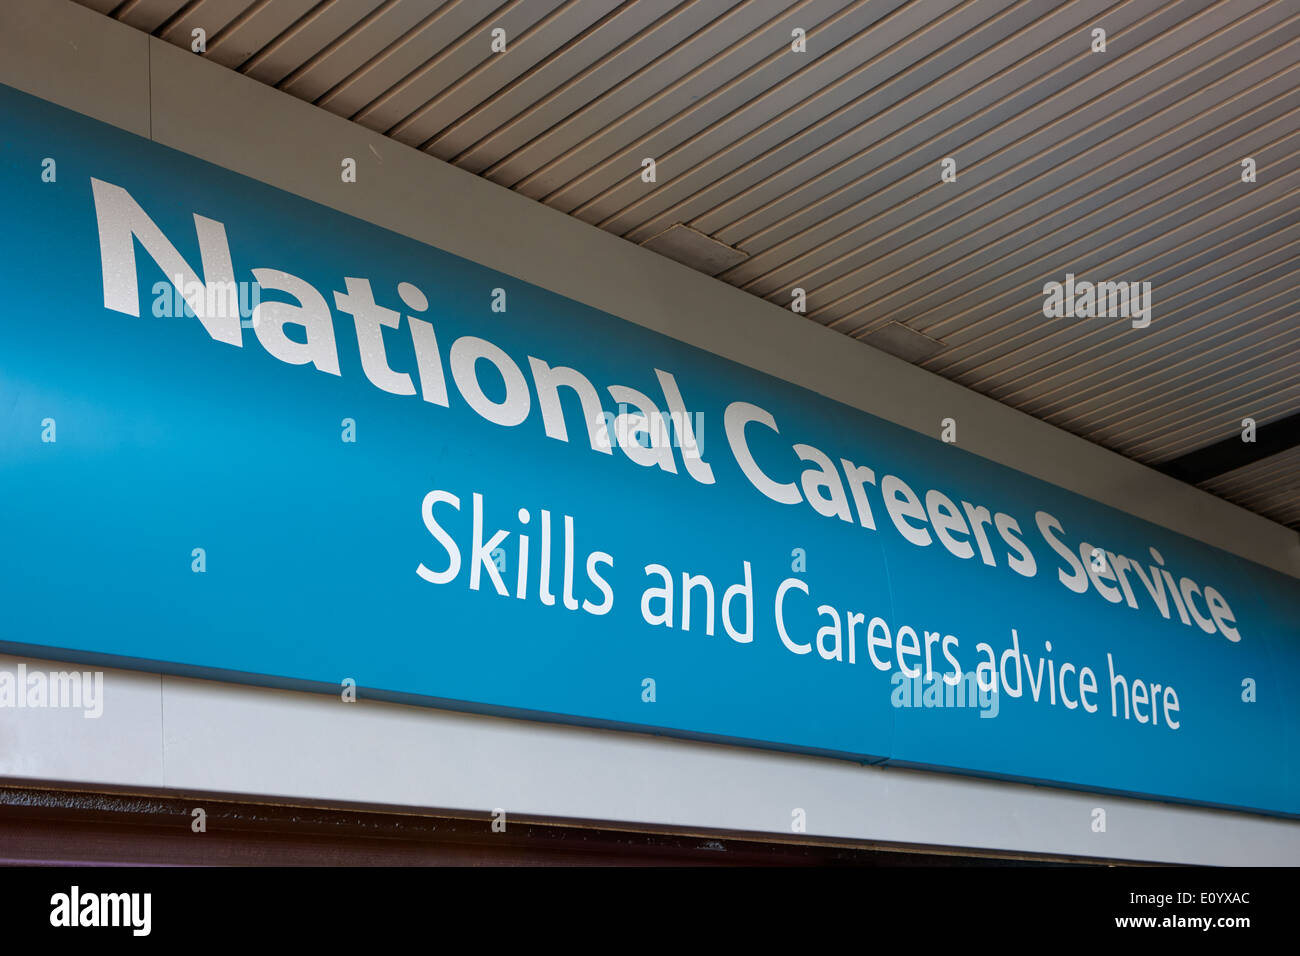 national careers service office Kirkby town centre Merseyside UK - Stock Image